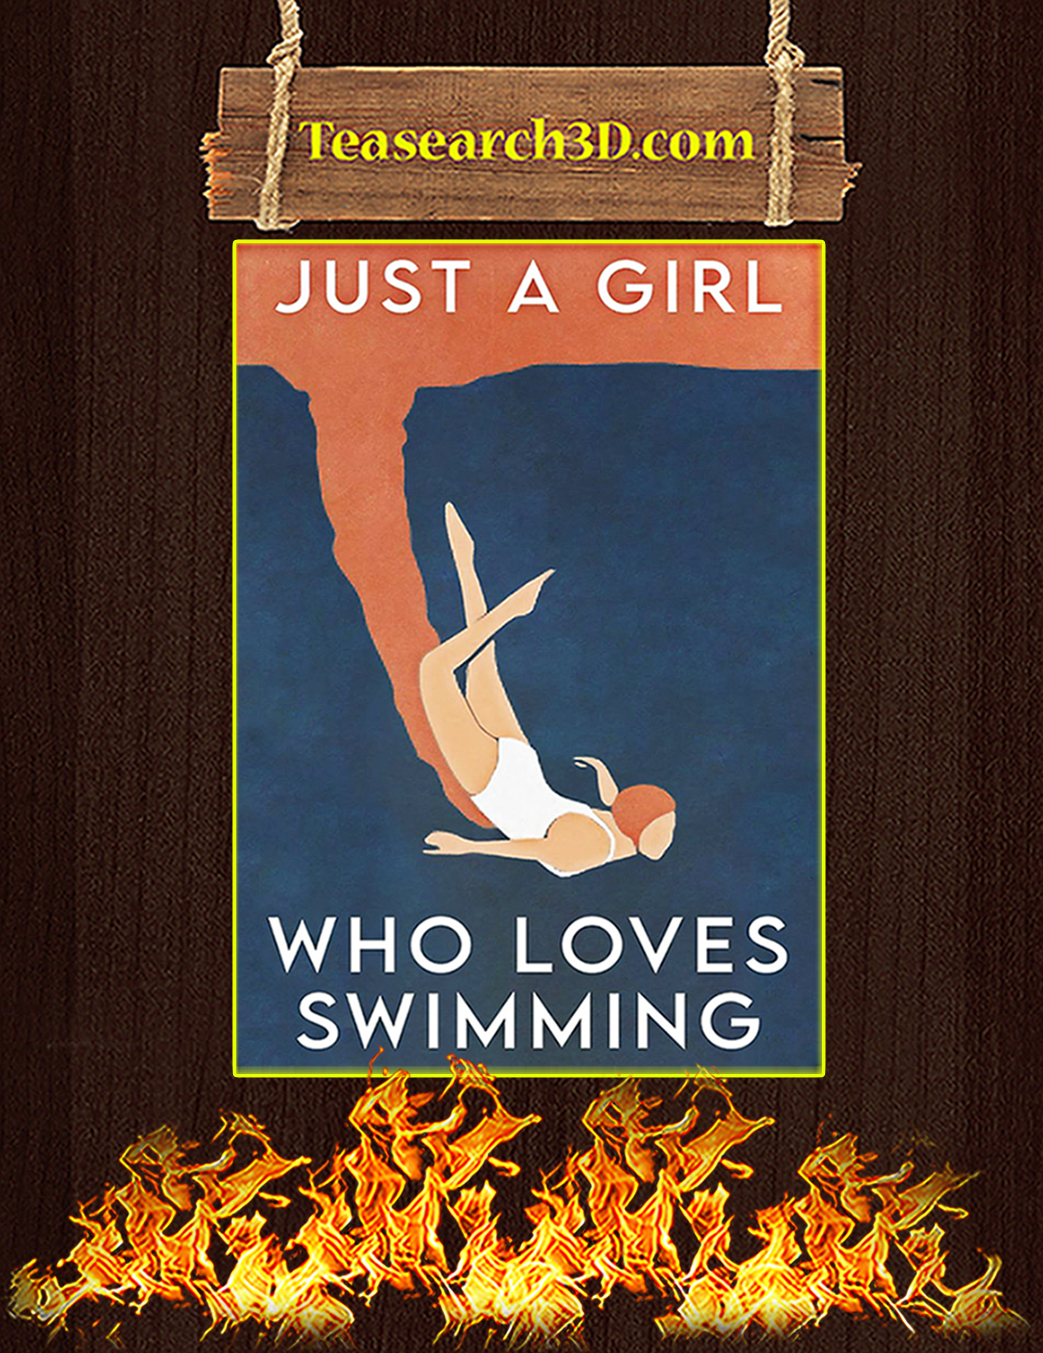 Swimming Just a girl who loves poster A1